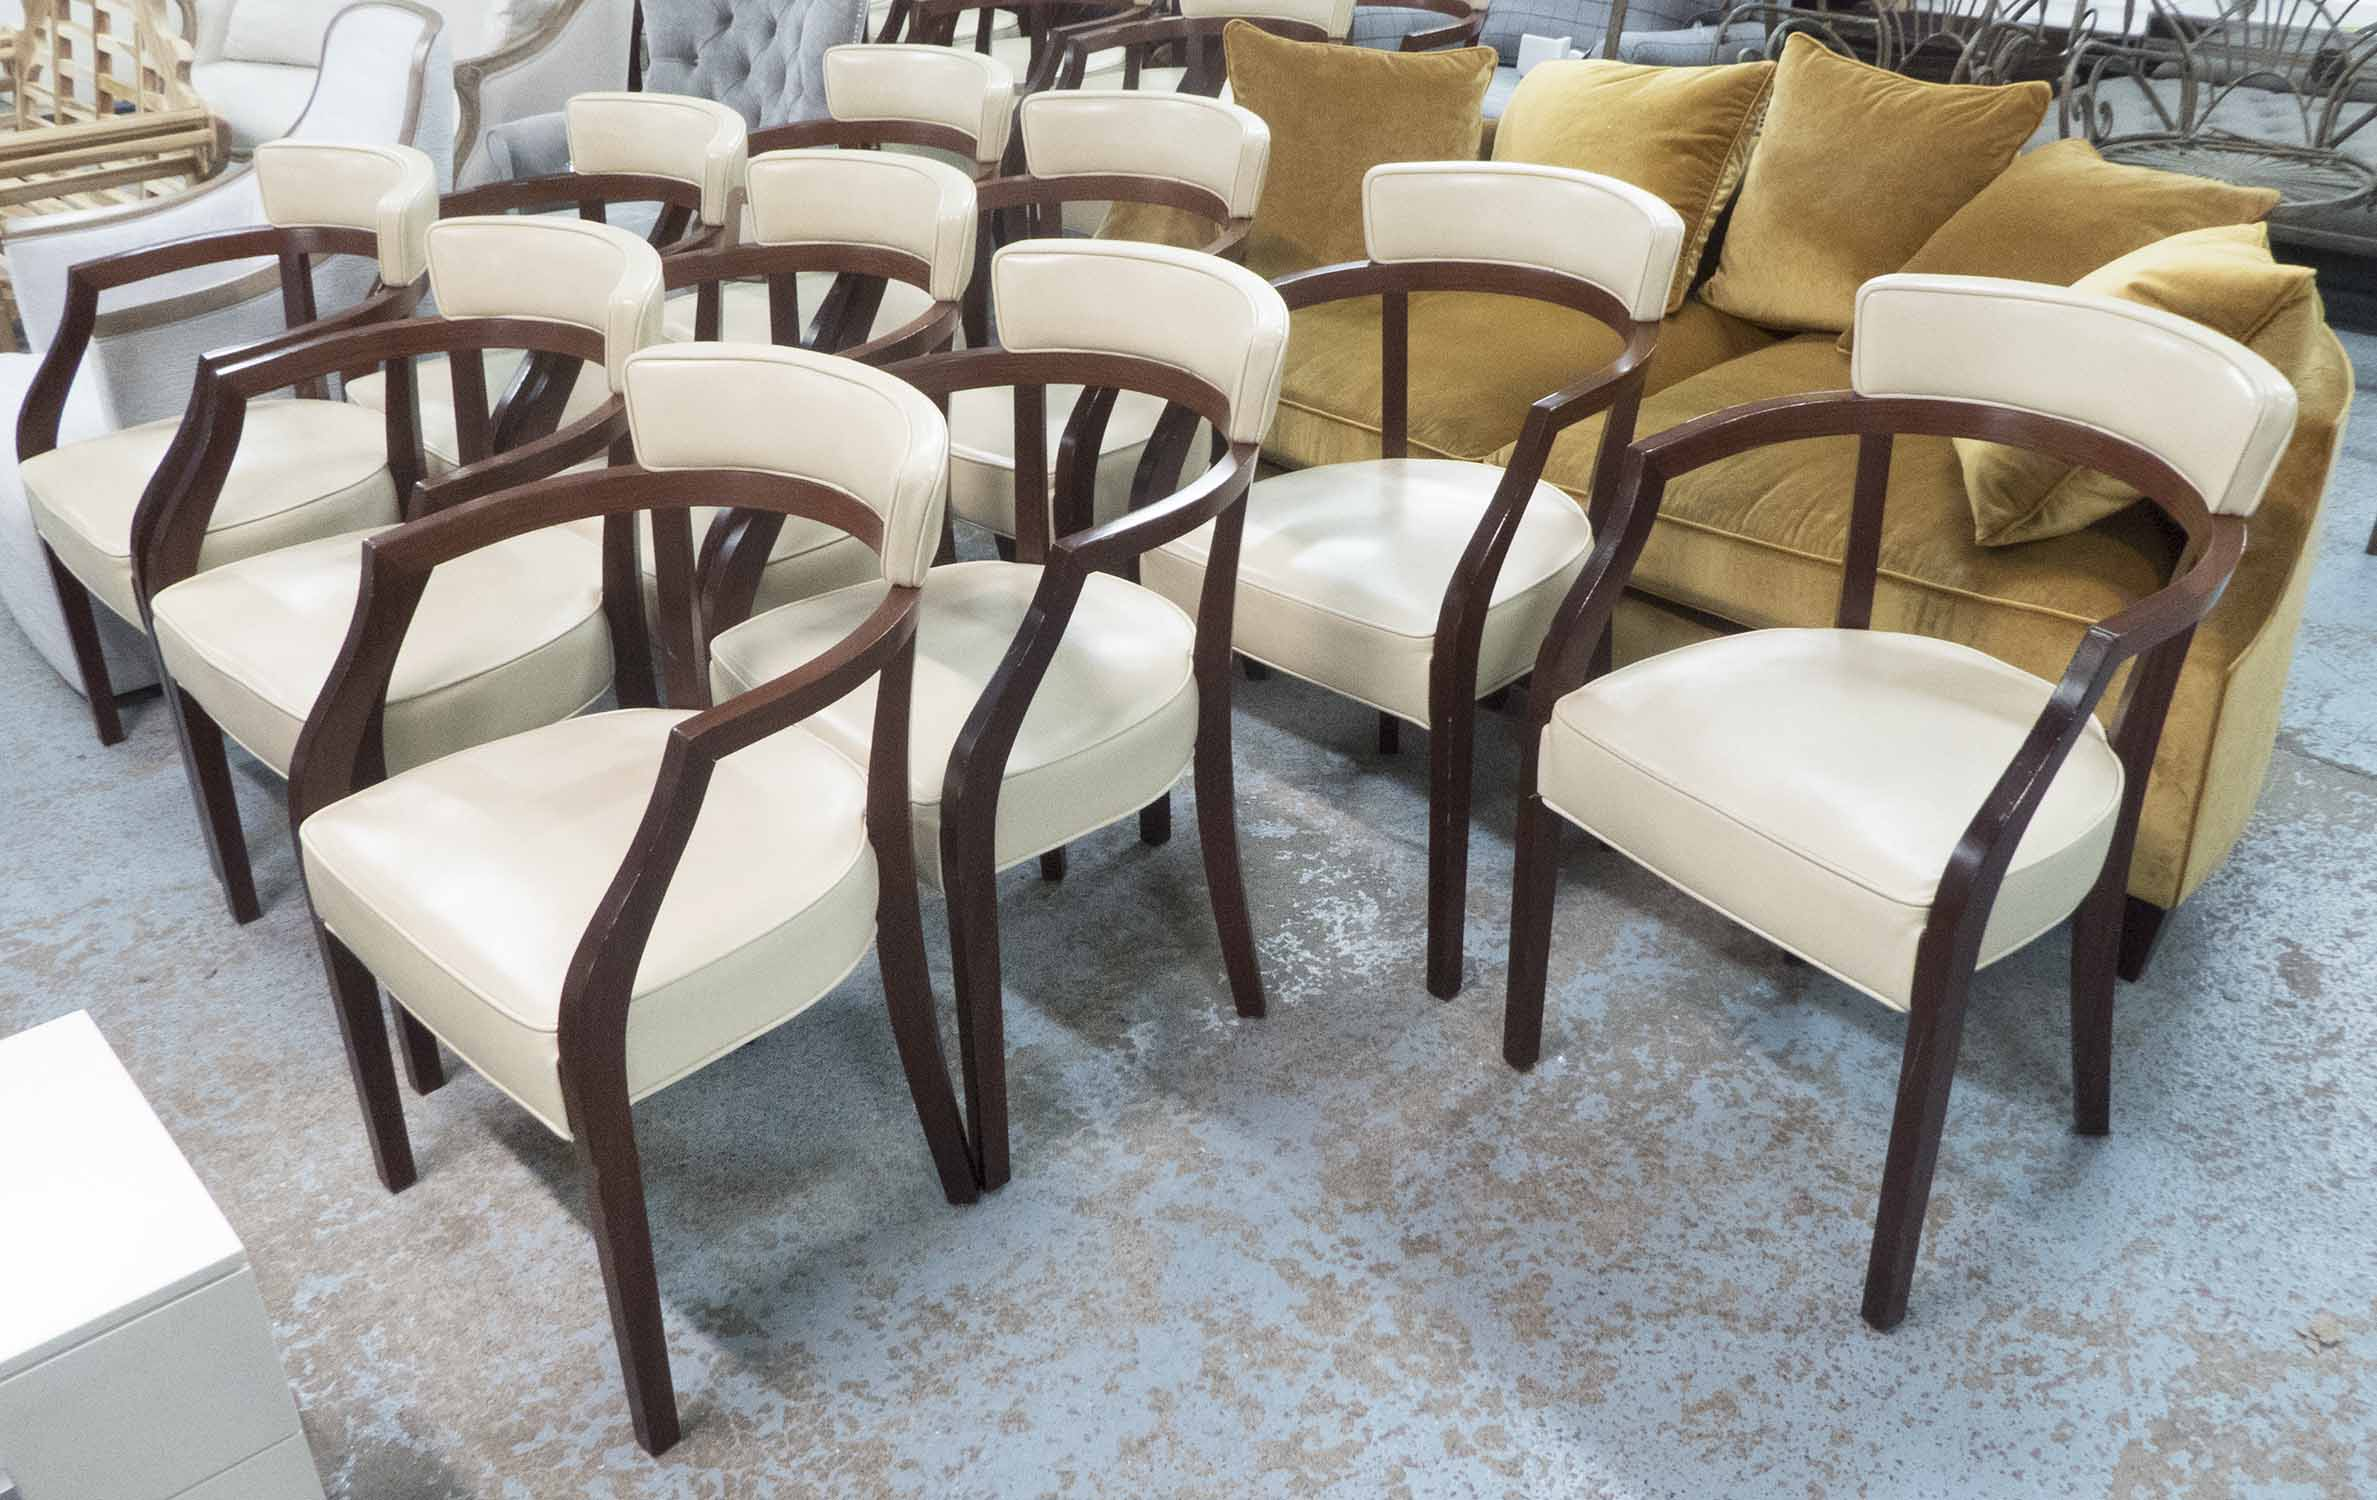 Lot 37 - DINING CHAIRS, a set of ten, 'Neoz', by Philippe Starck, in cream leather, each chair RRP £1500 new,